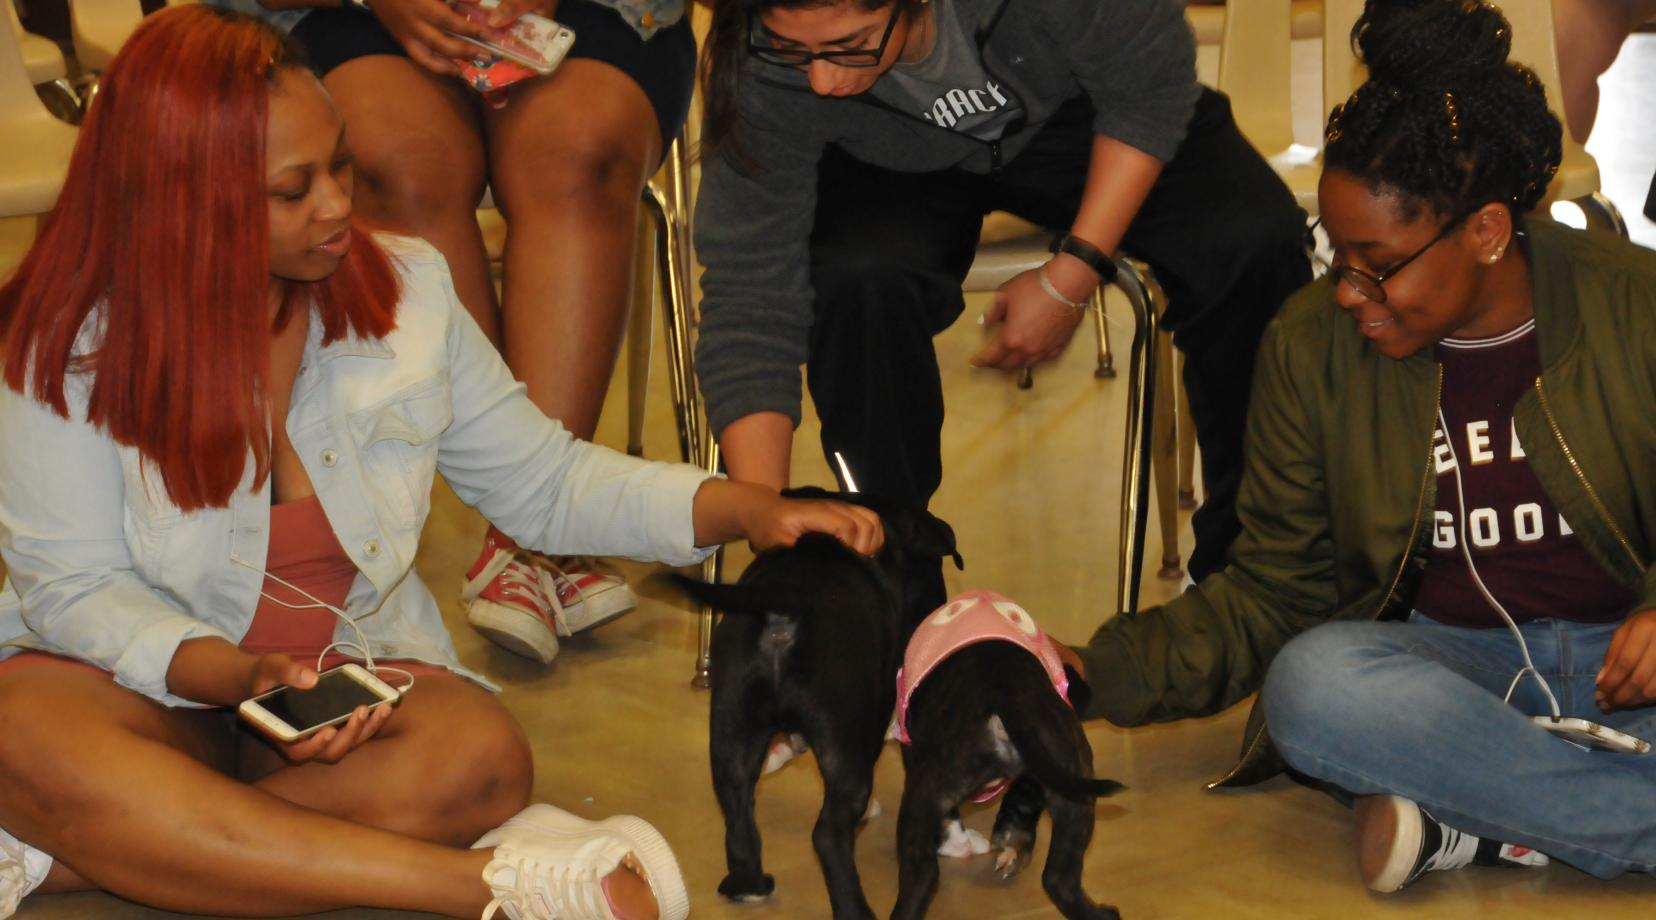 Two DSU students play with two puppies as a relaxing way to reduce stress.